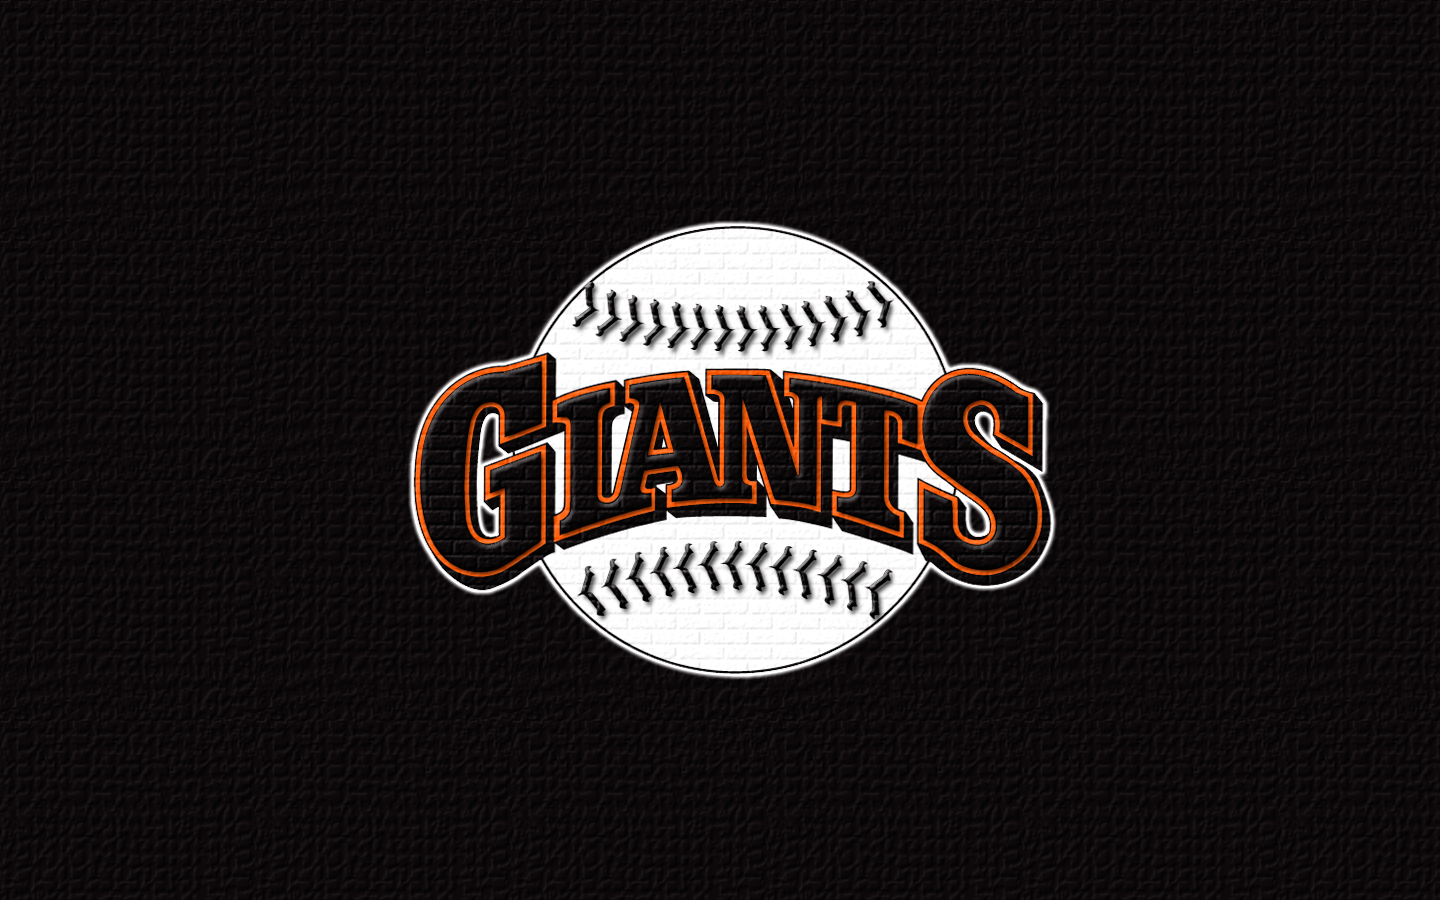 Sf Giants Game Time Wallpaper Mixed HD Game Wallpapers 1440x900